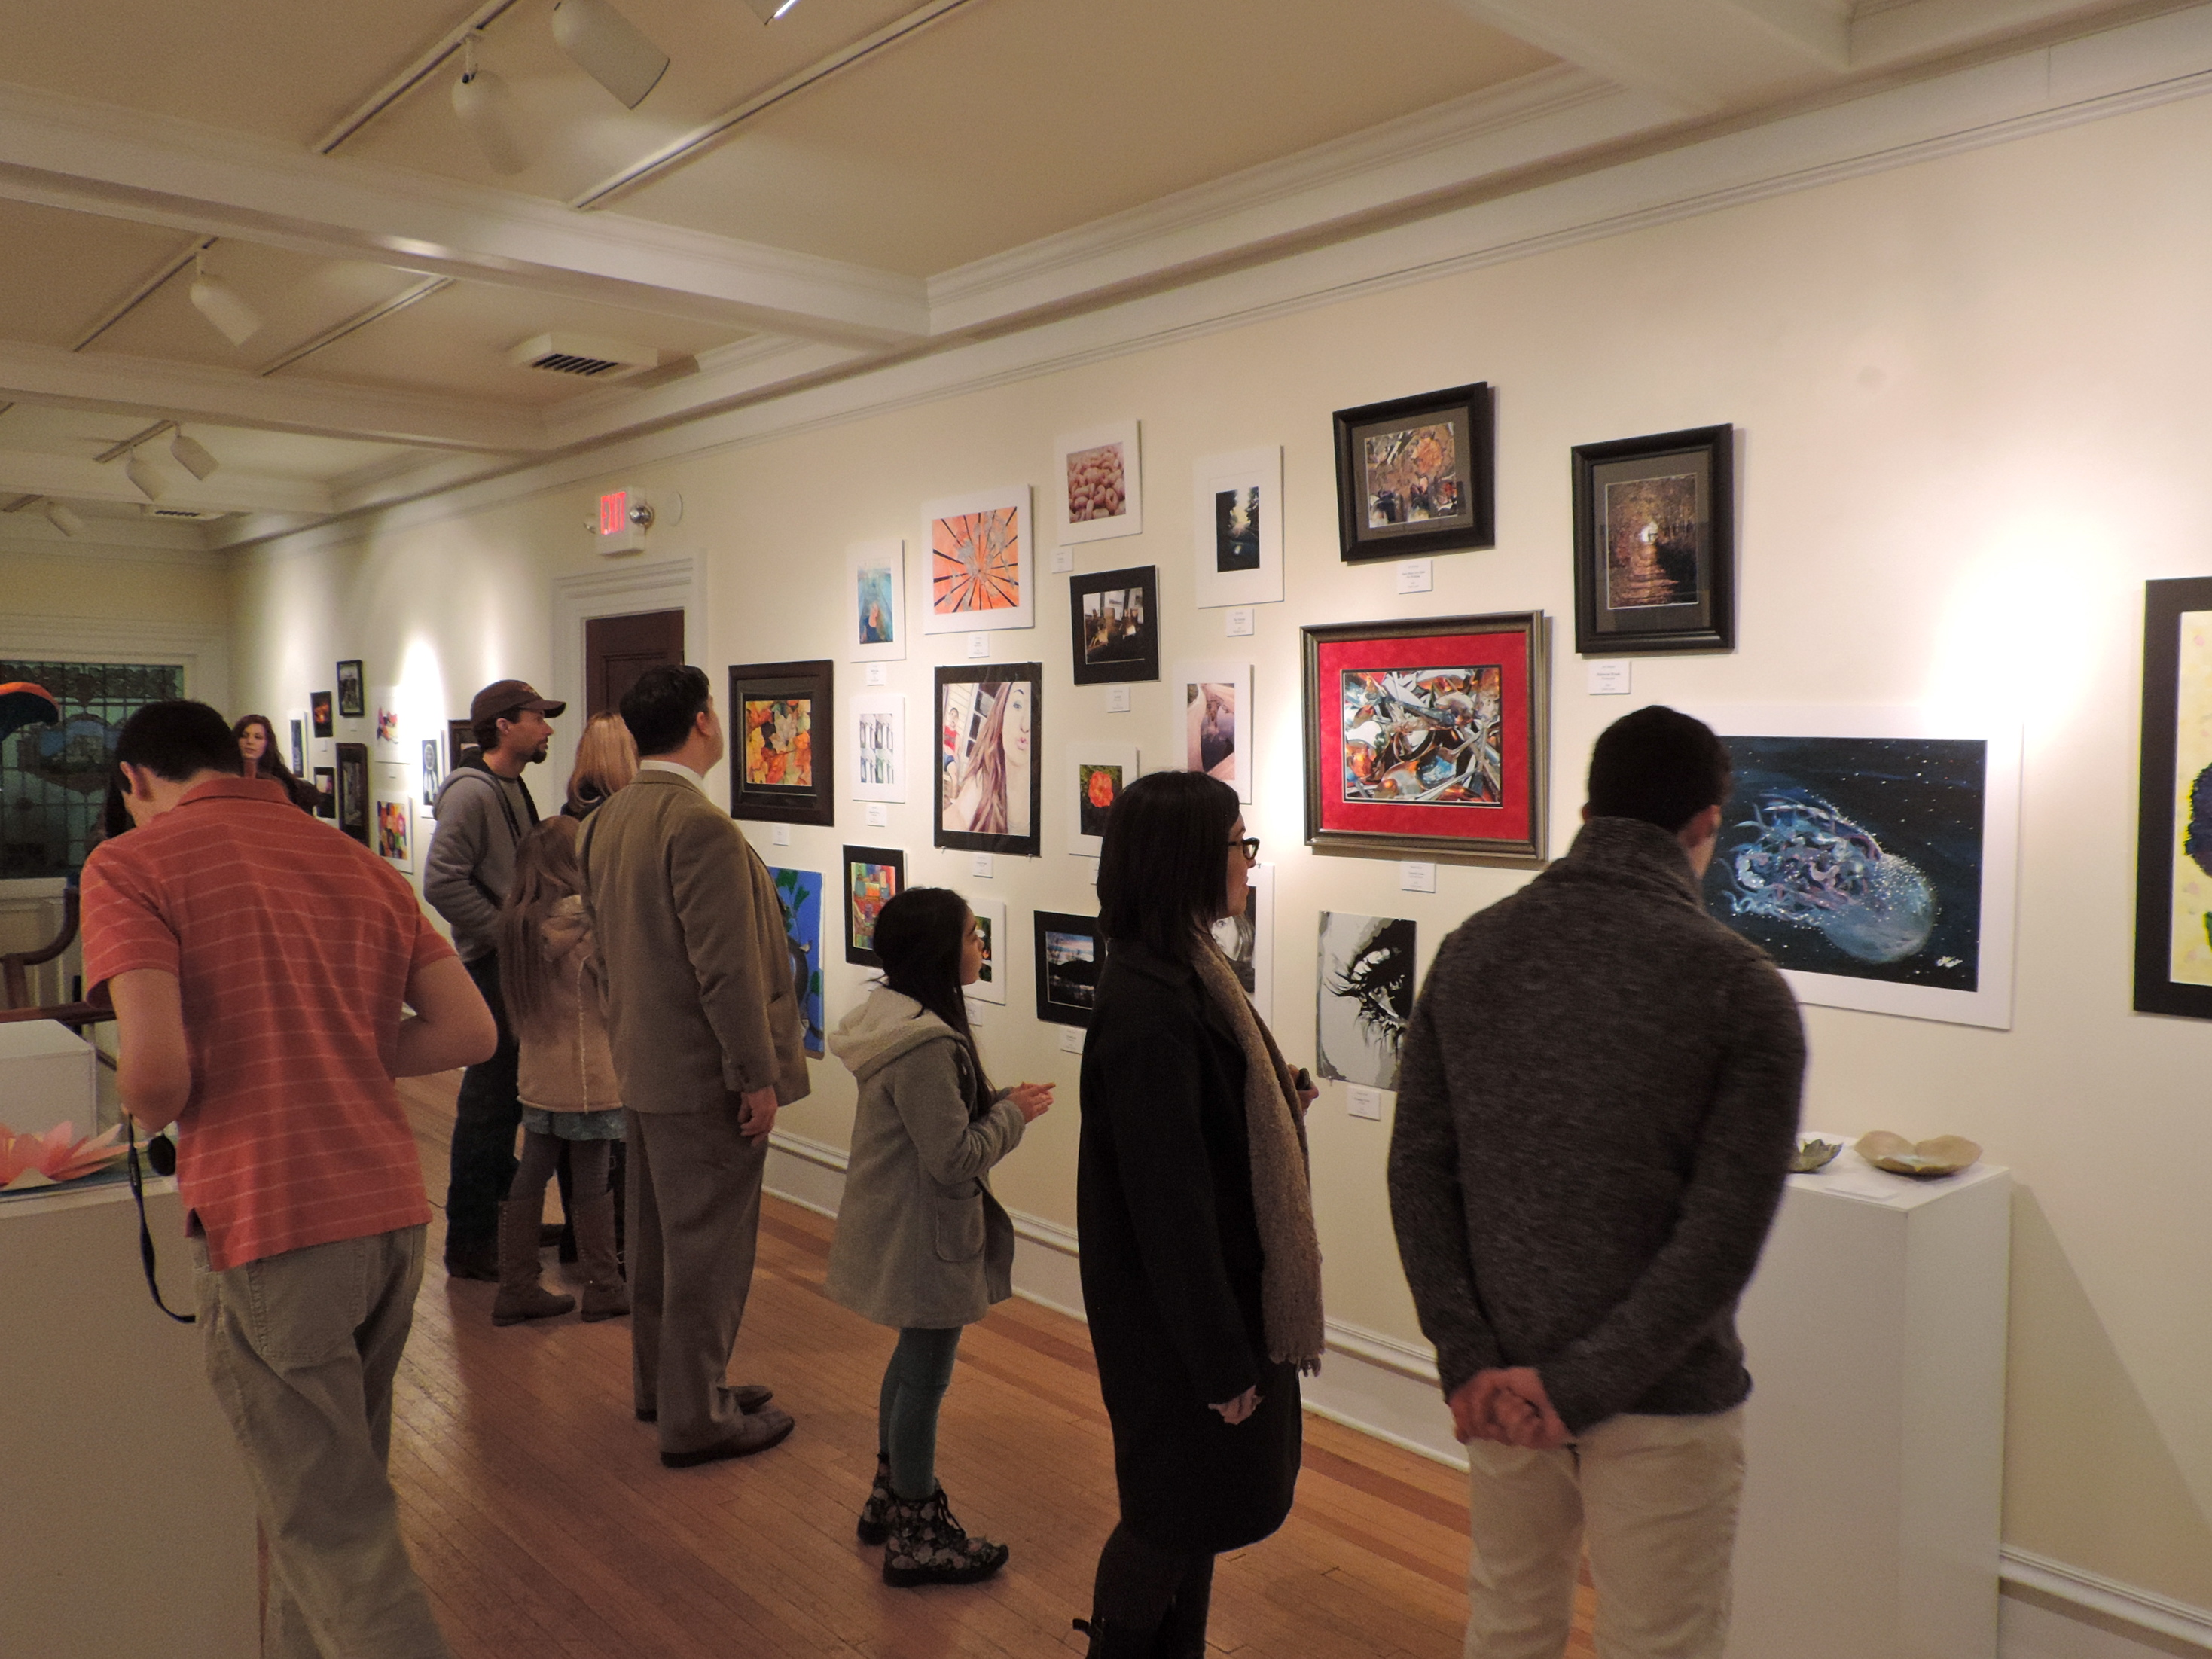 Oi exhibit and workshops offer art resources to ohio for Art and craft shows in ohio